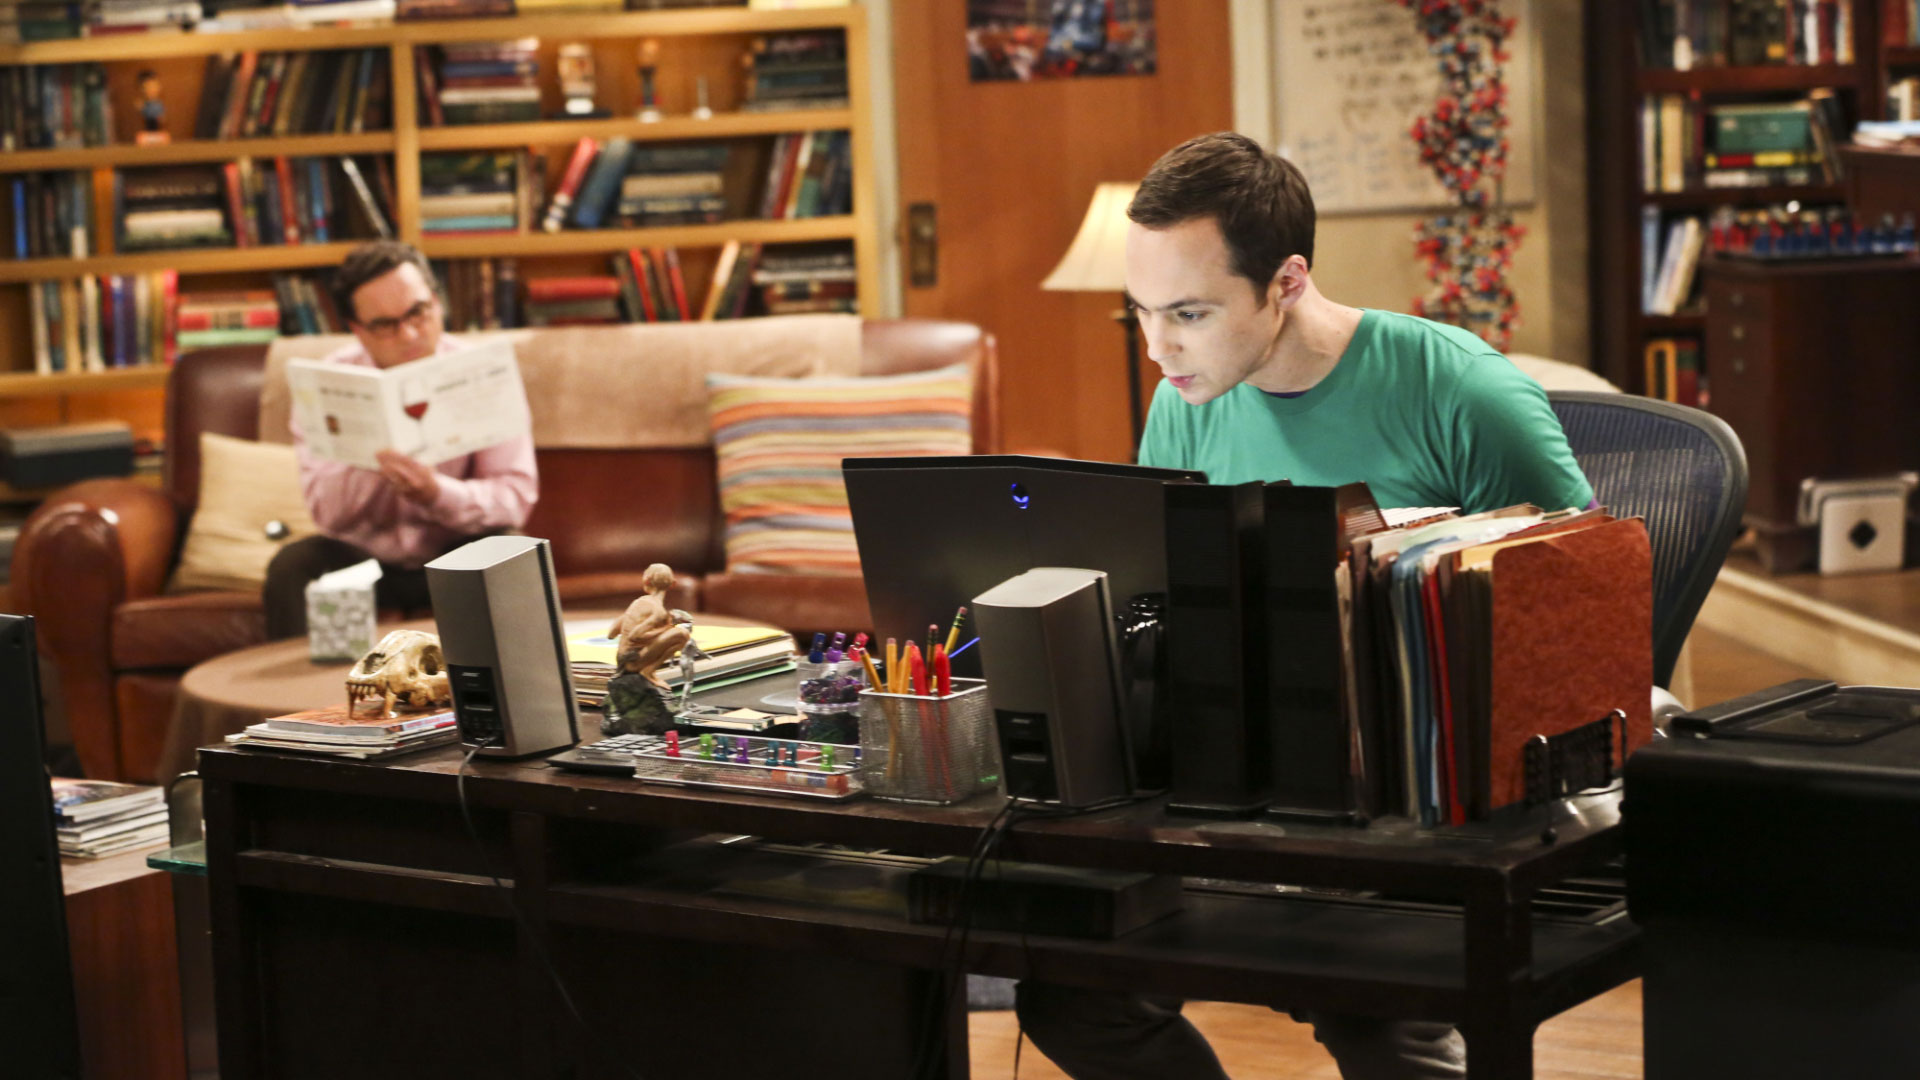 Sheldon plans an exciting evening while Leonard quietly reads on the couch.